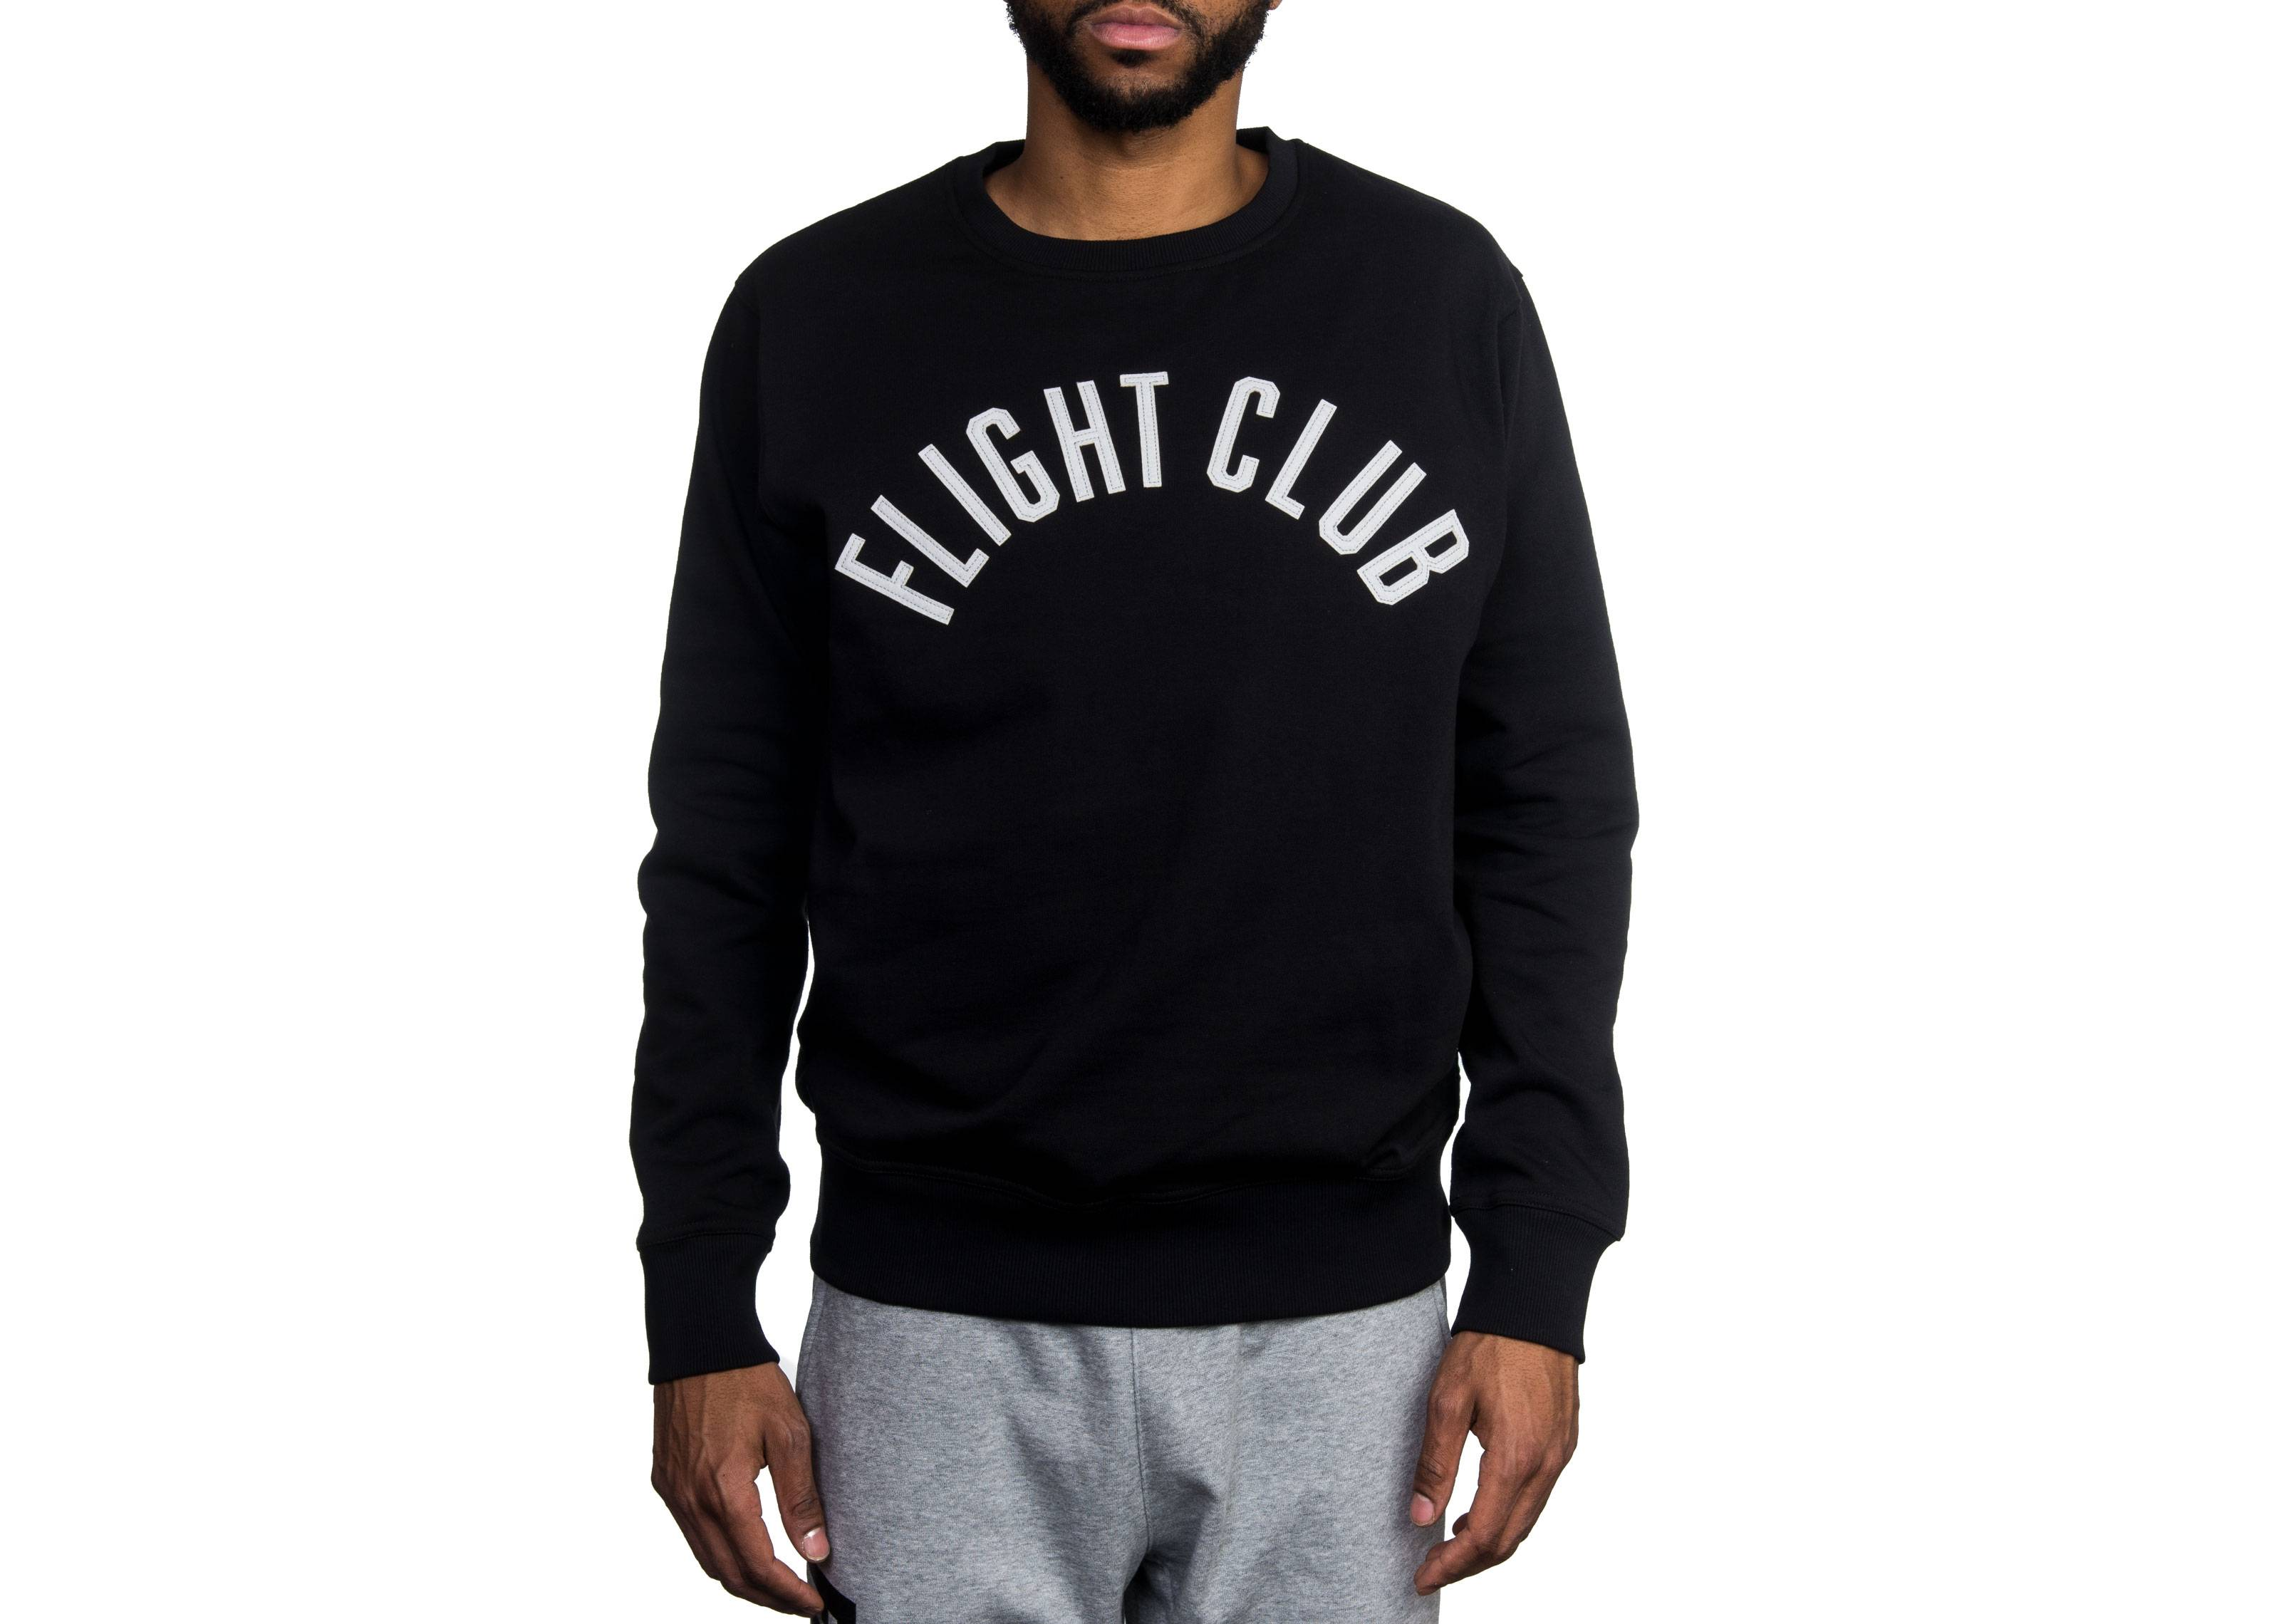 University Crew Neck Sweatshirt